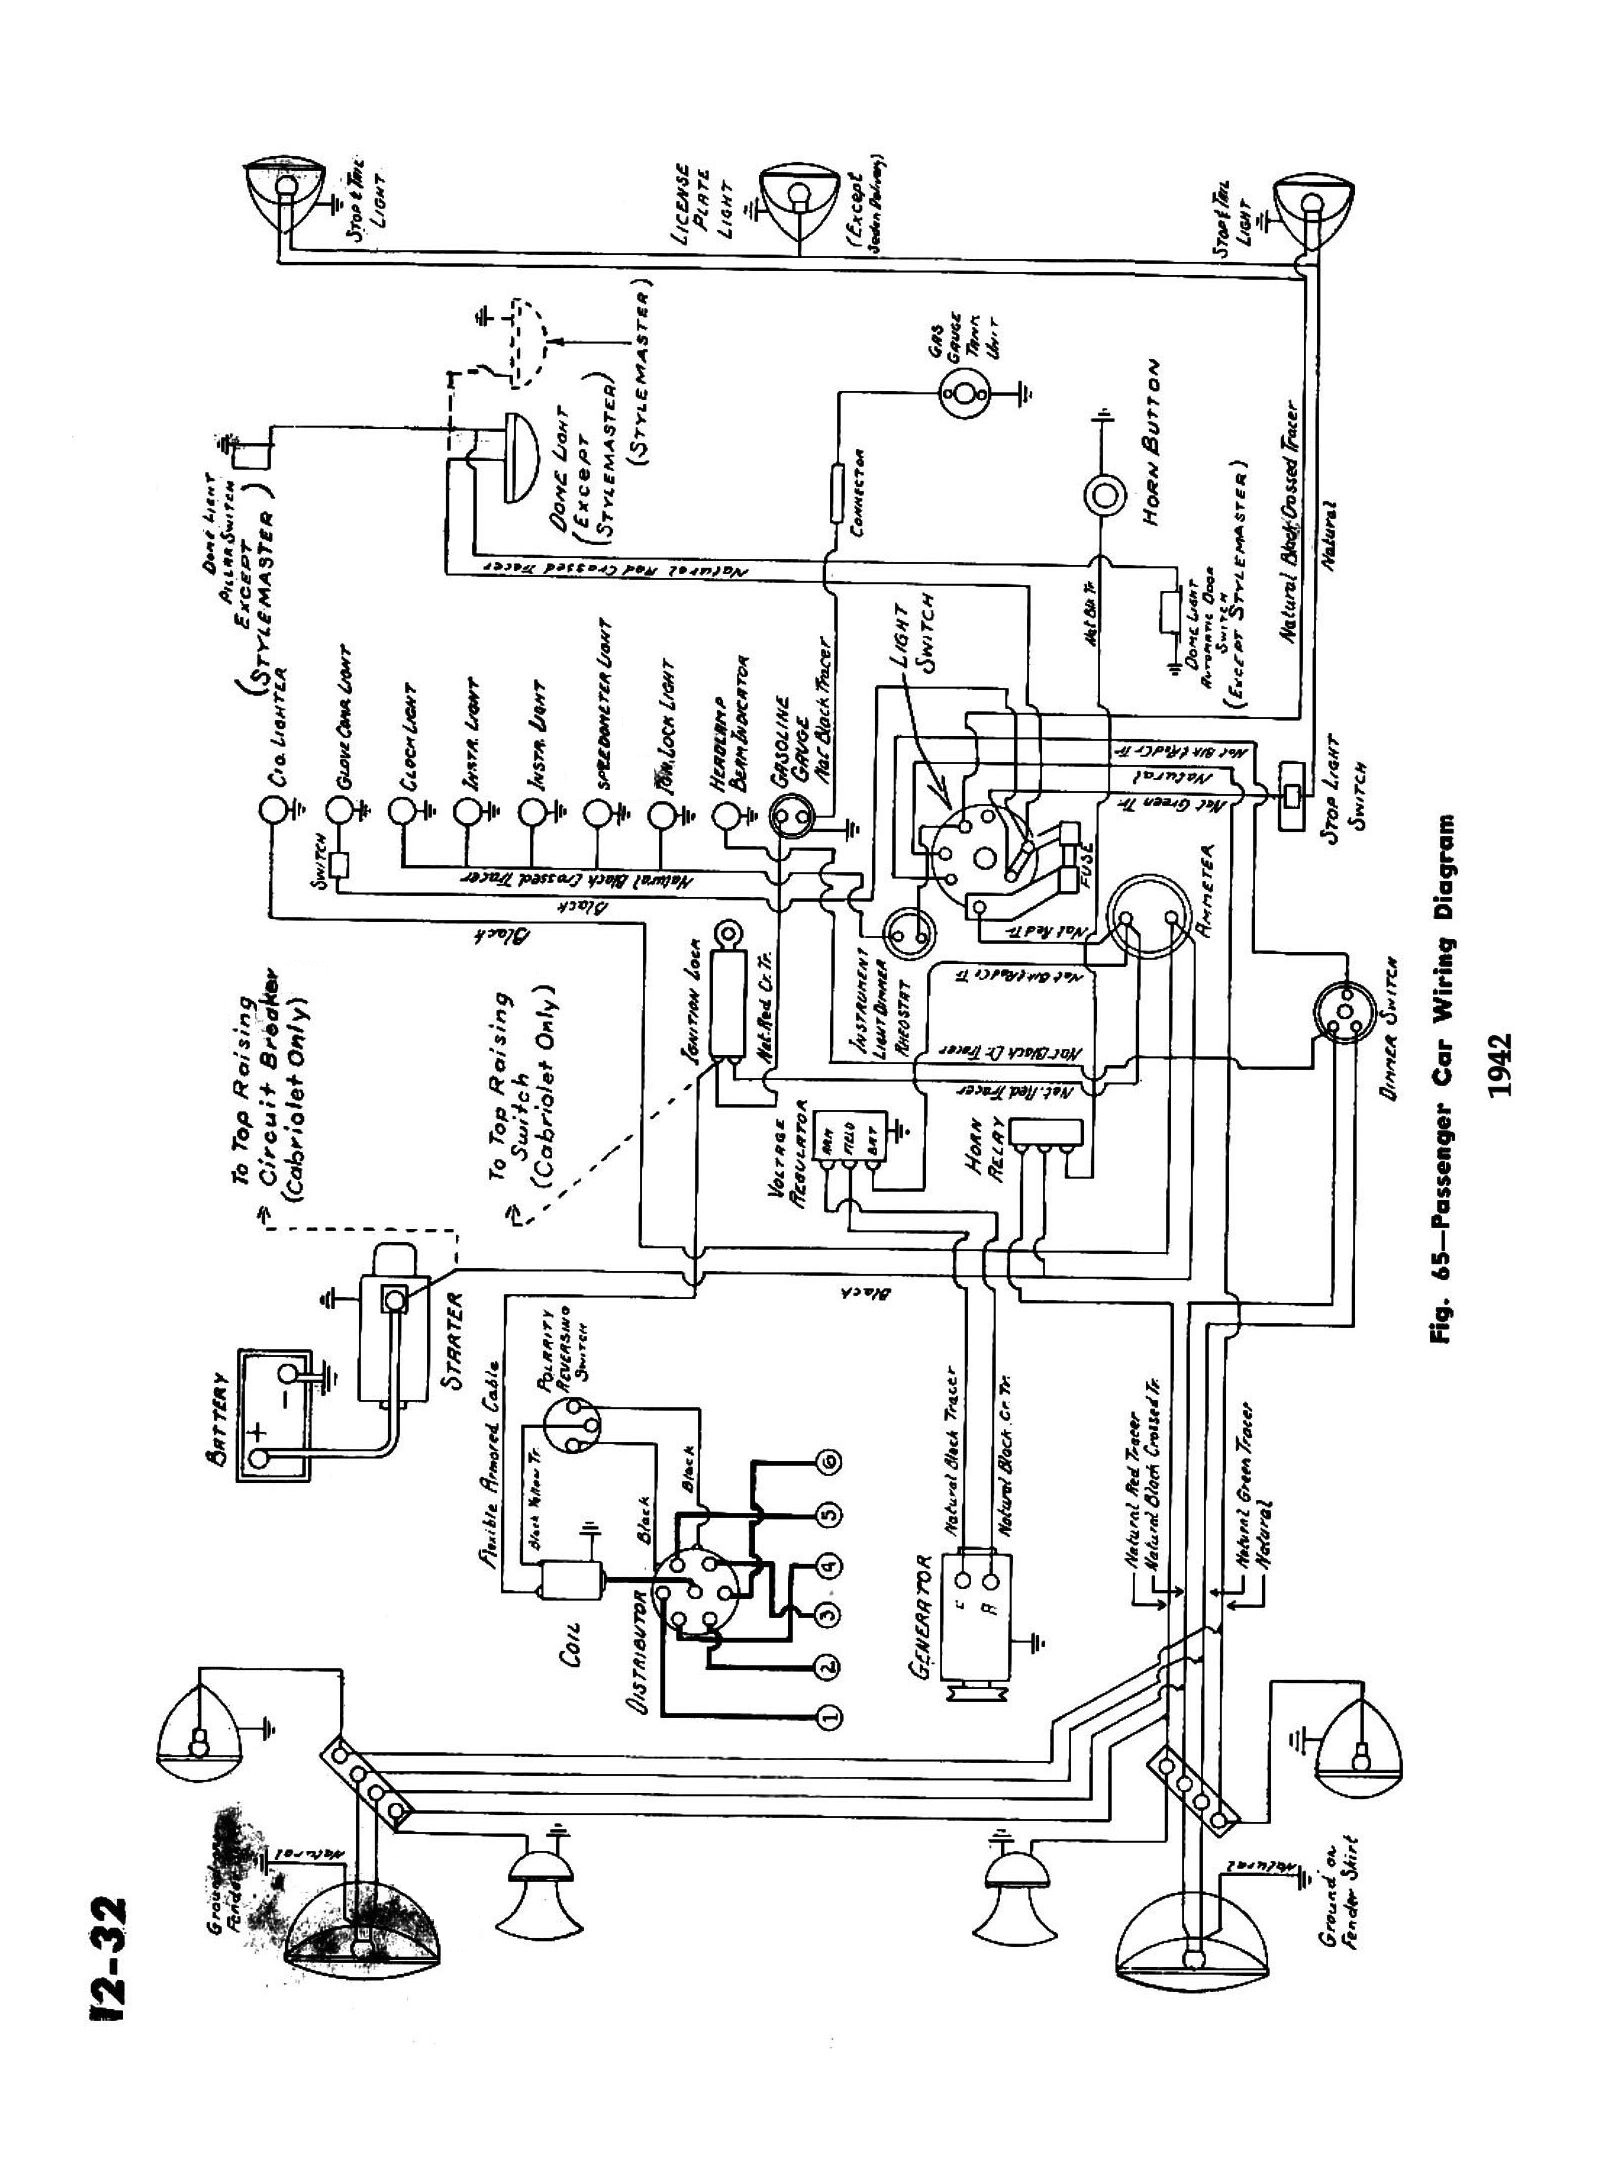 1999 peterbilt 378 wiring diagram peterbilt 335 wiring